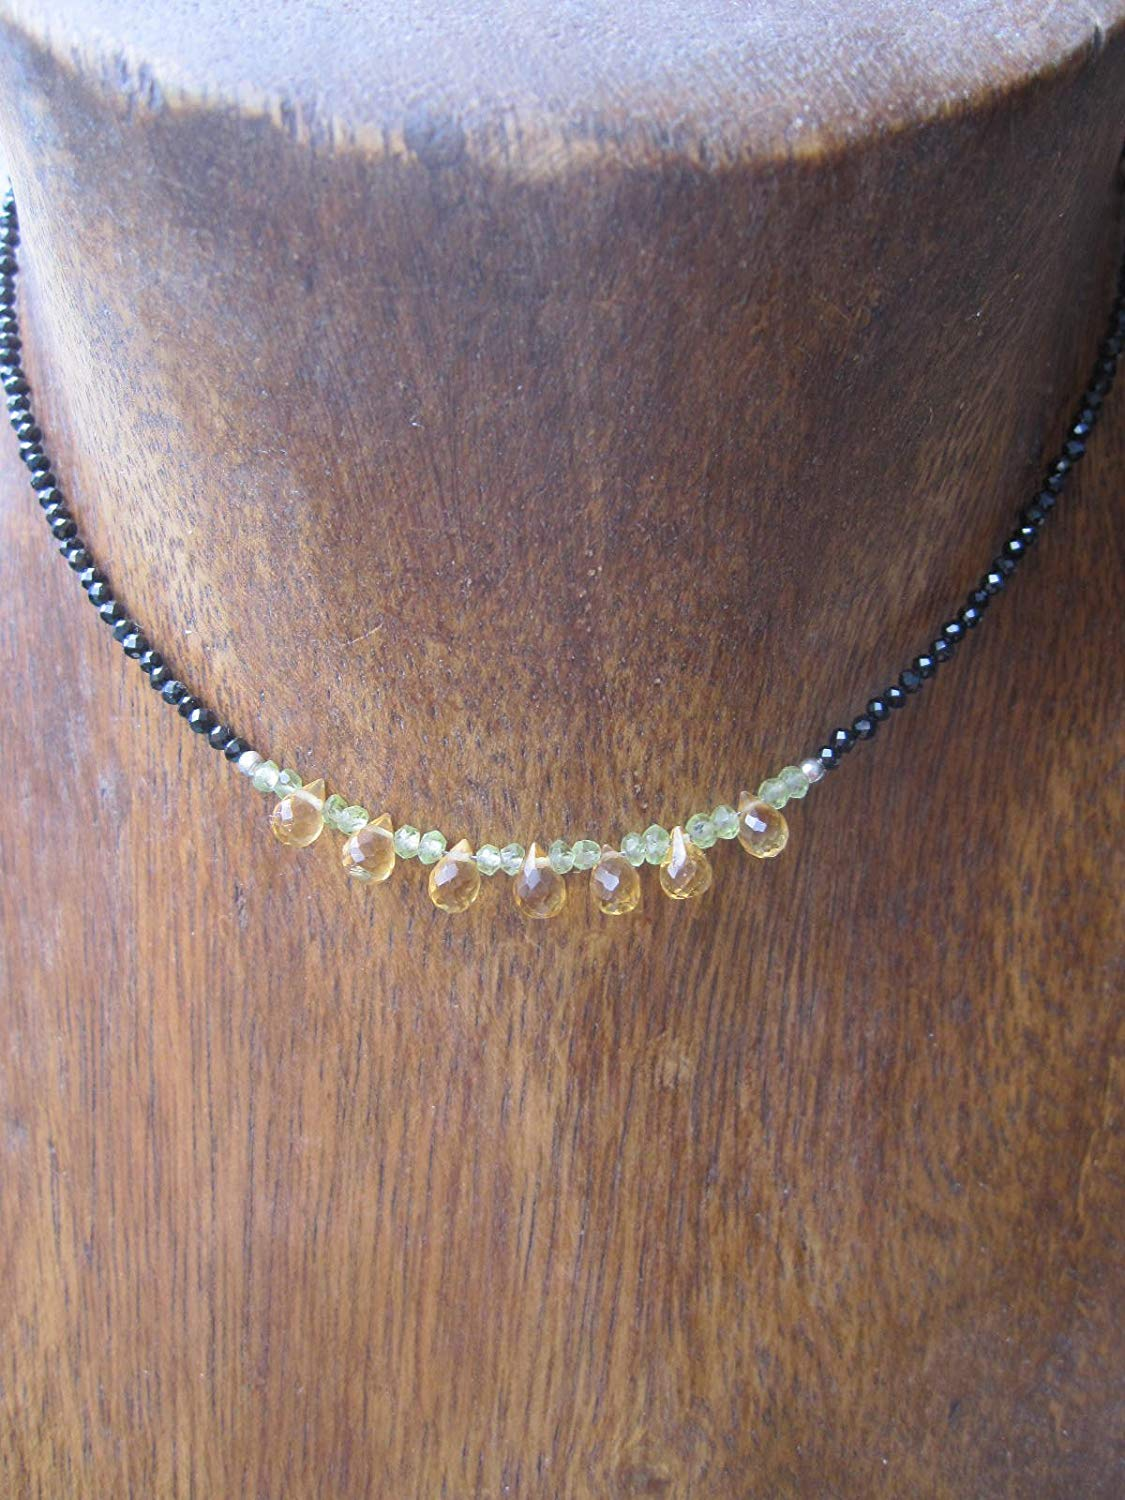 c0bb3fe6484e6d Get Quotations · Citrine,Peridot,Black Spinel Necklace,925 Sterling Silver  Chain Extender 1 inch -